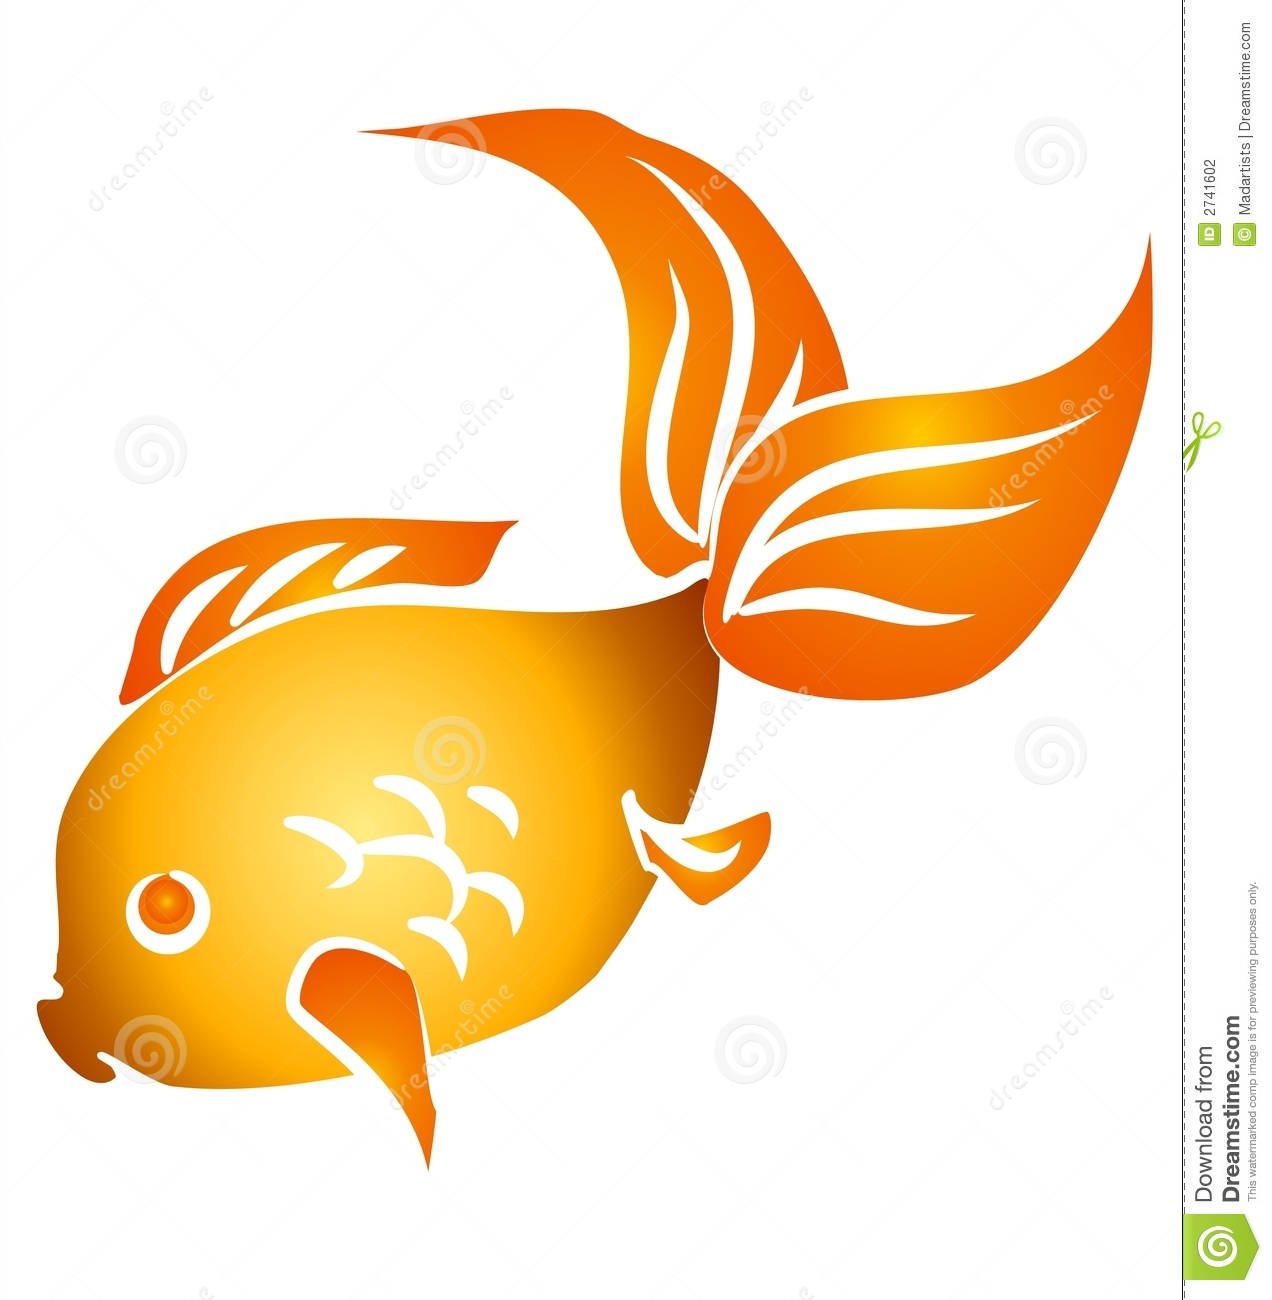 isolated goldfish clip art stock illustration illustration of rh dreamstime com goldfish clipart free goldfish clipart gif